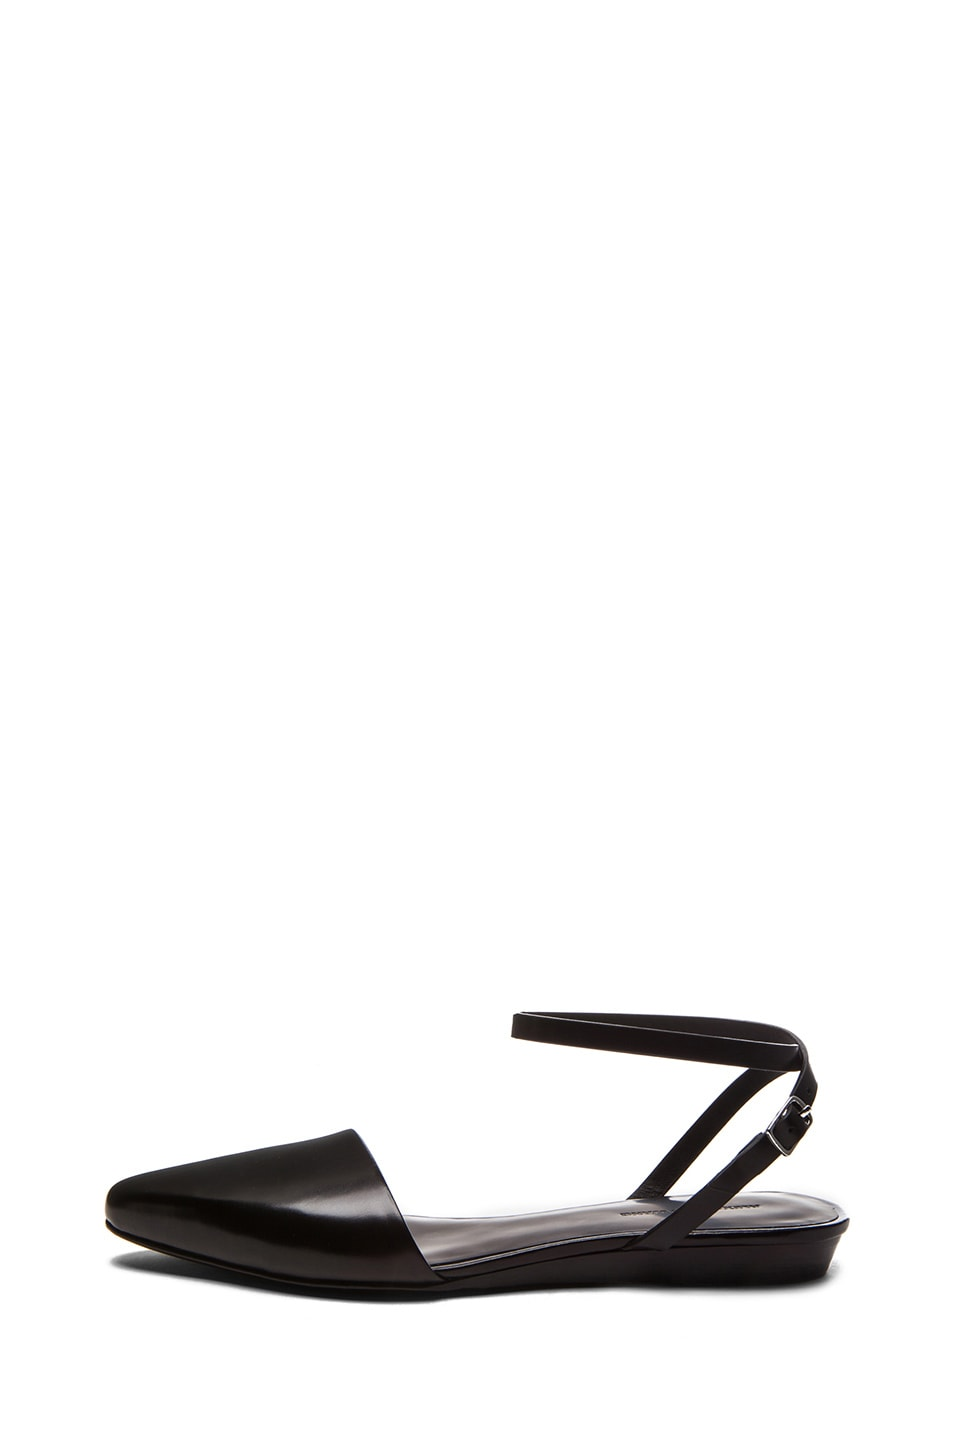 Image 1 of Alexander Wang Esther Polished Calfskin Leather Flat in Black